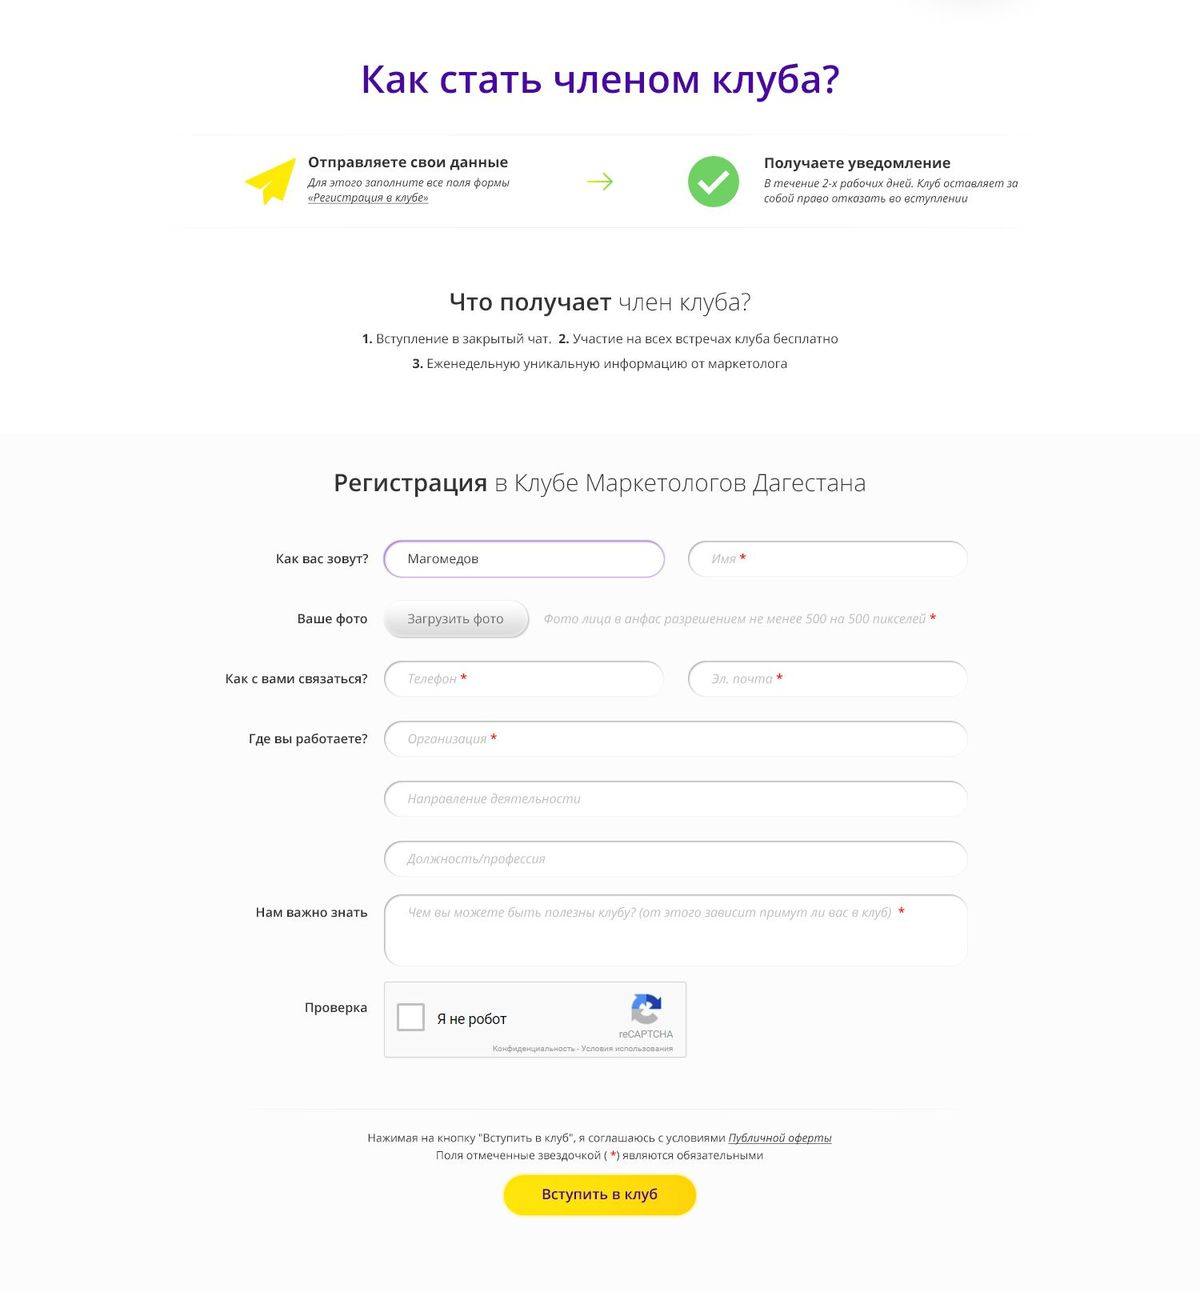 0031 marketing.dagestan.ru become member marketing club